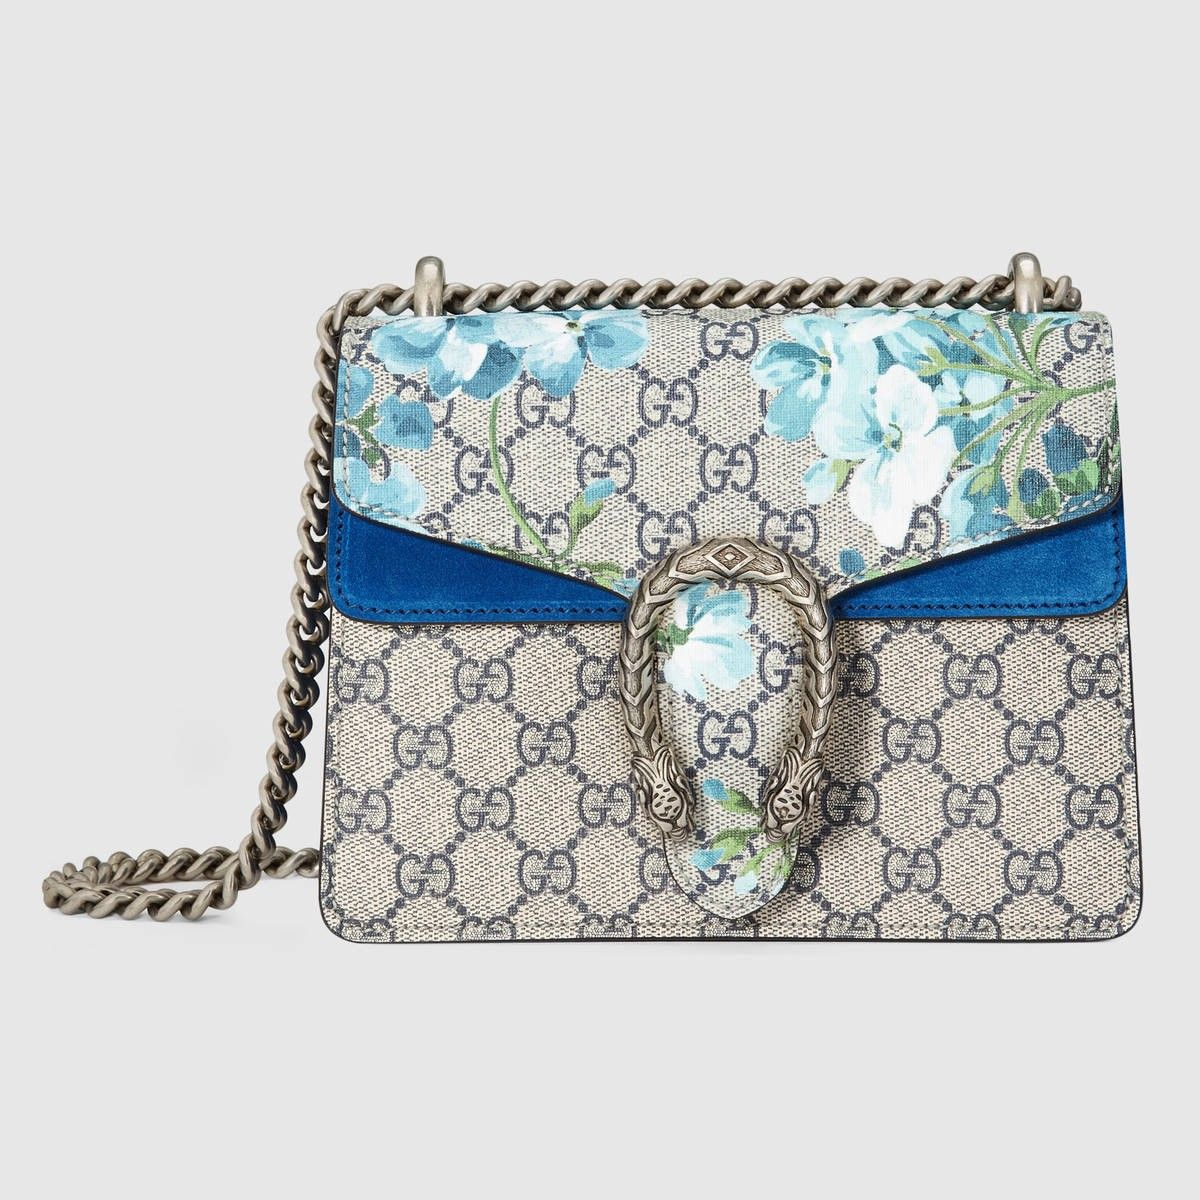 298fb4aa9f1c GUCCI Dionysus Gg Blooms Mini Bag - Blooms Print.  gucci  bags  shoulder  bags  hand bags  canvas  suede